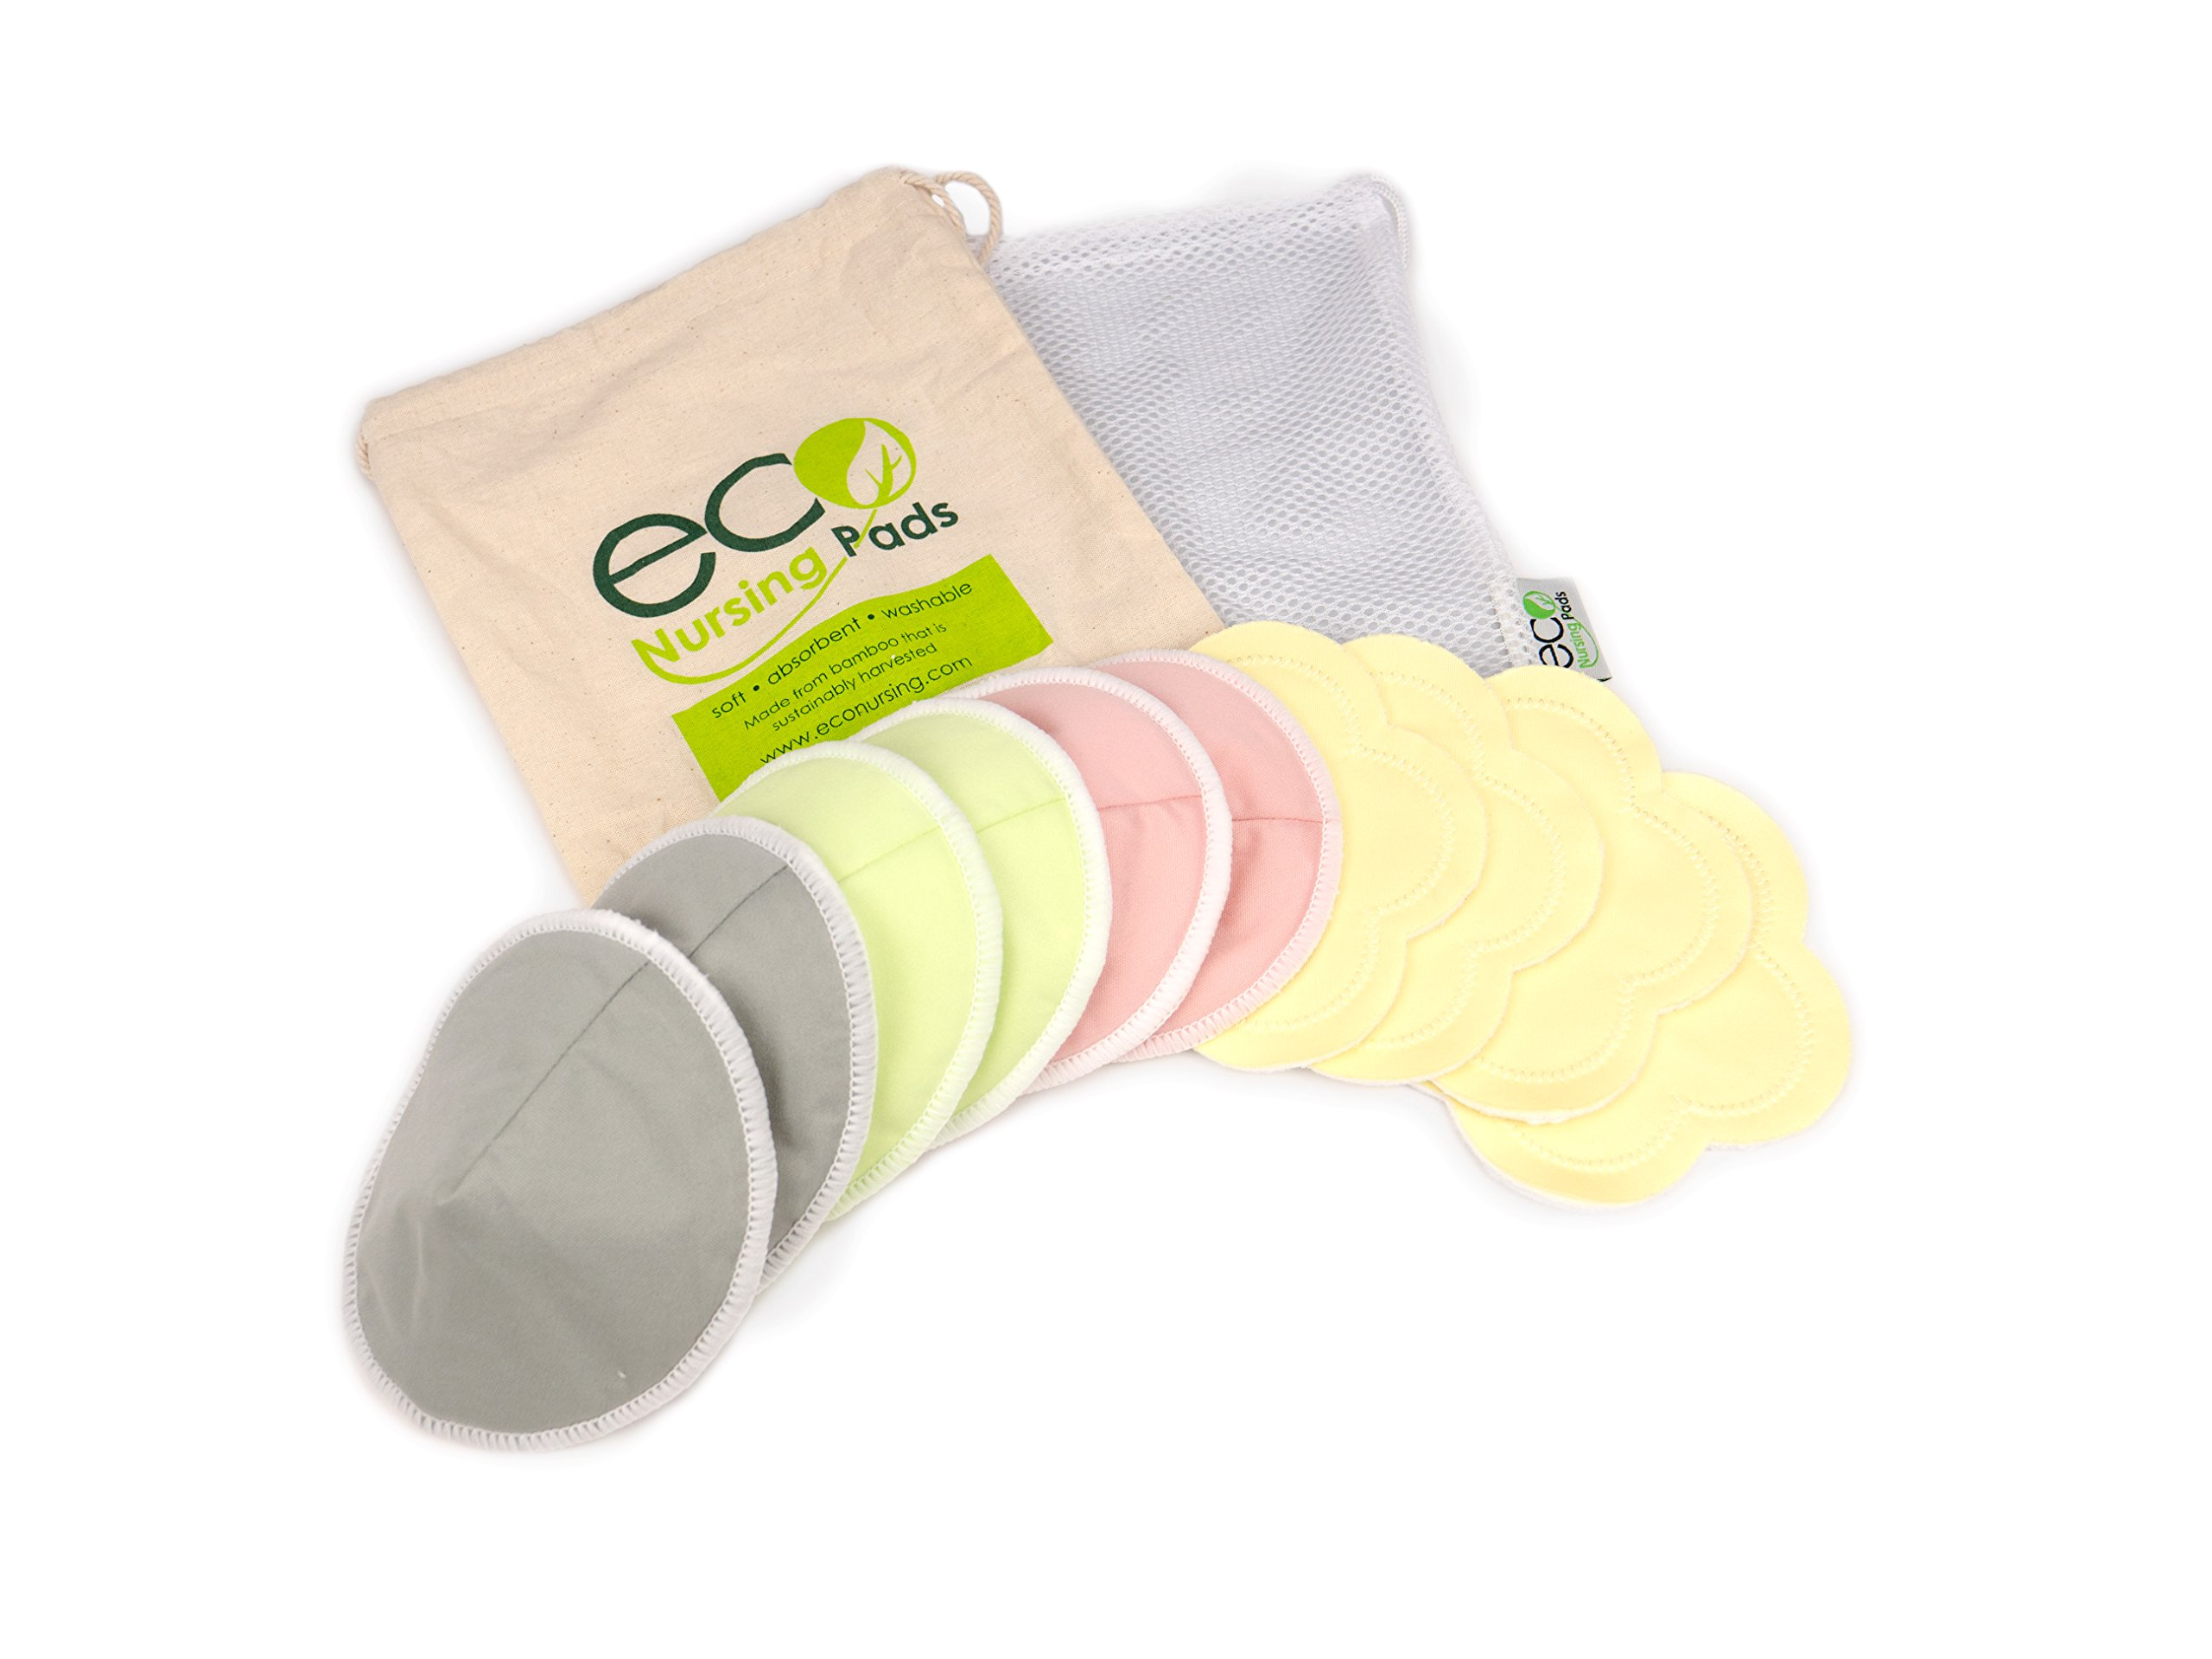 Contoured Washable Reusable Bamboo Nursing Pads | Organic Bamboo Breastfeeding Pads, Ultra-Soft Velvet Flower Pads | 10 Pack with 2 BONUS Pouches & FREE E-Book | Perfect Baby Shower Gift